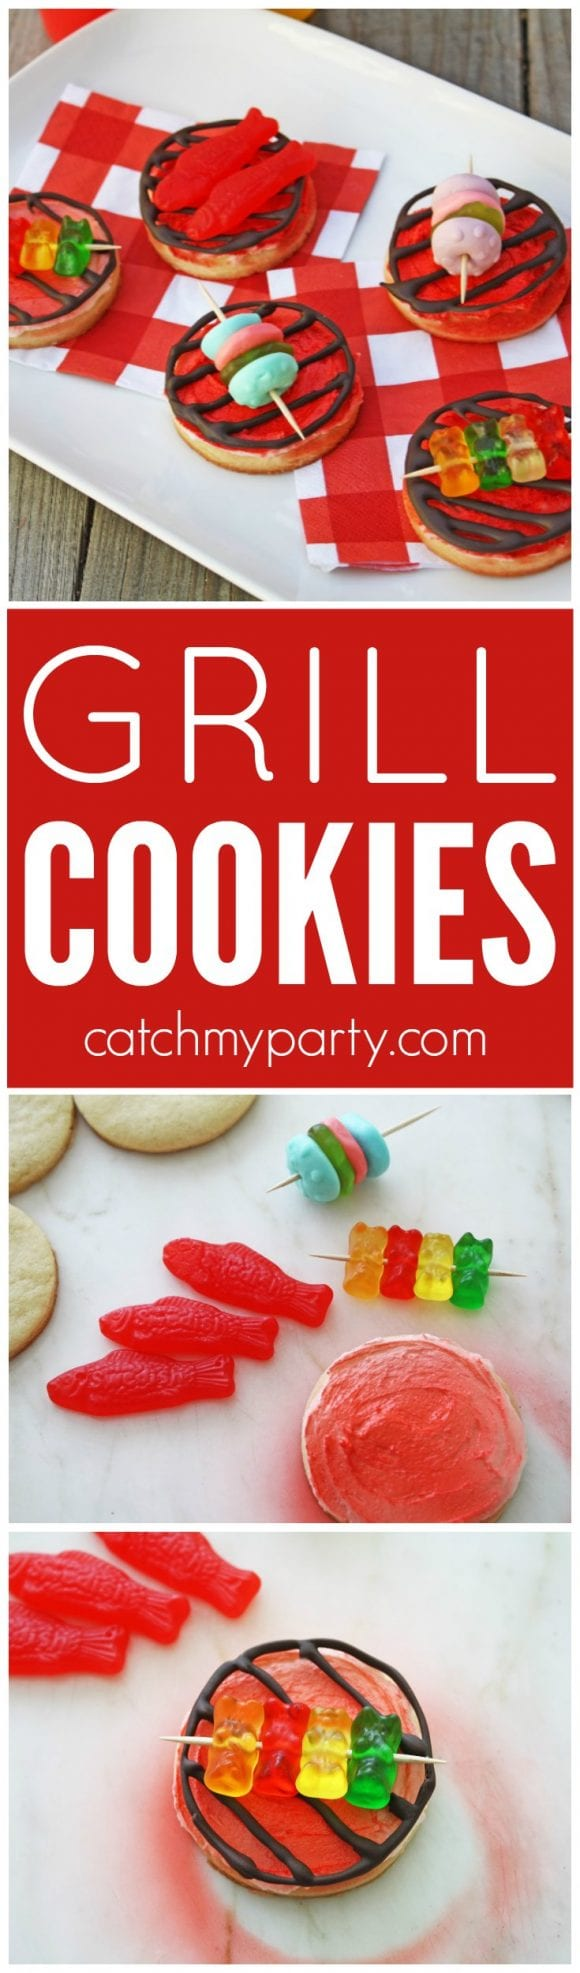 Grill cookies | Catchmyparty.com